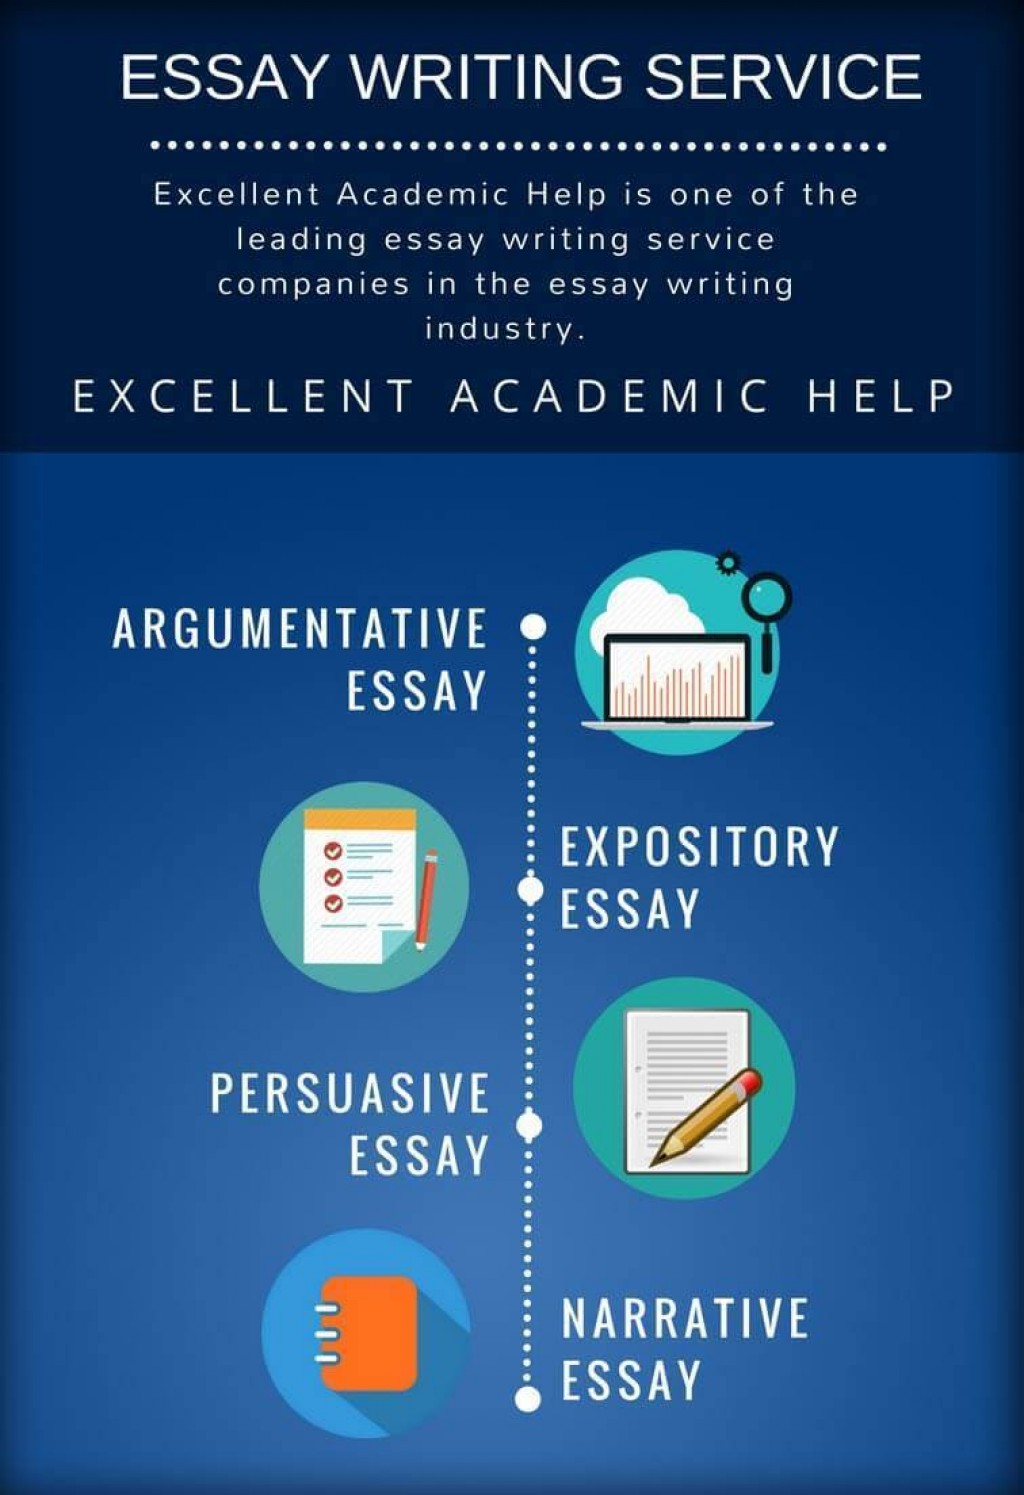 001 Essay Example Cheap Writing Top Service Reviews 2017 Canada Large